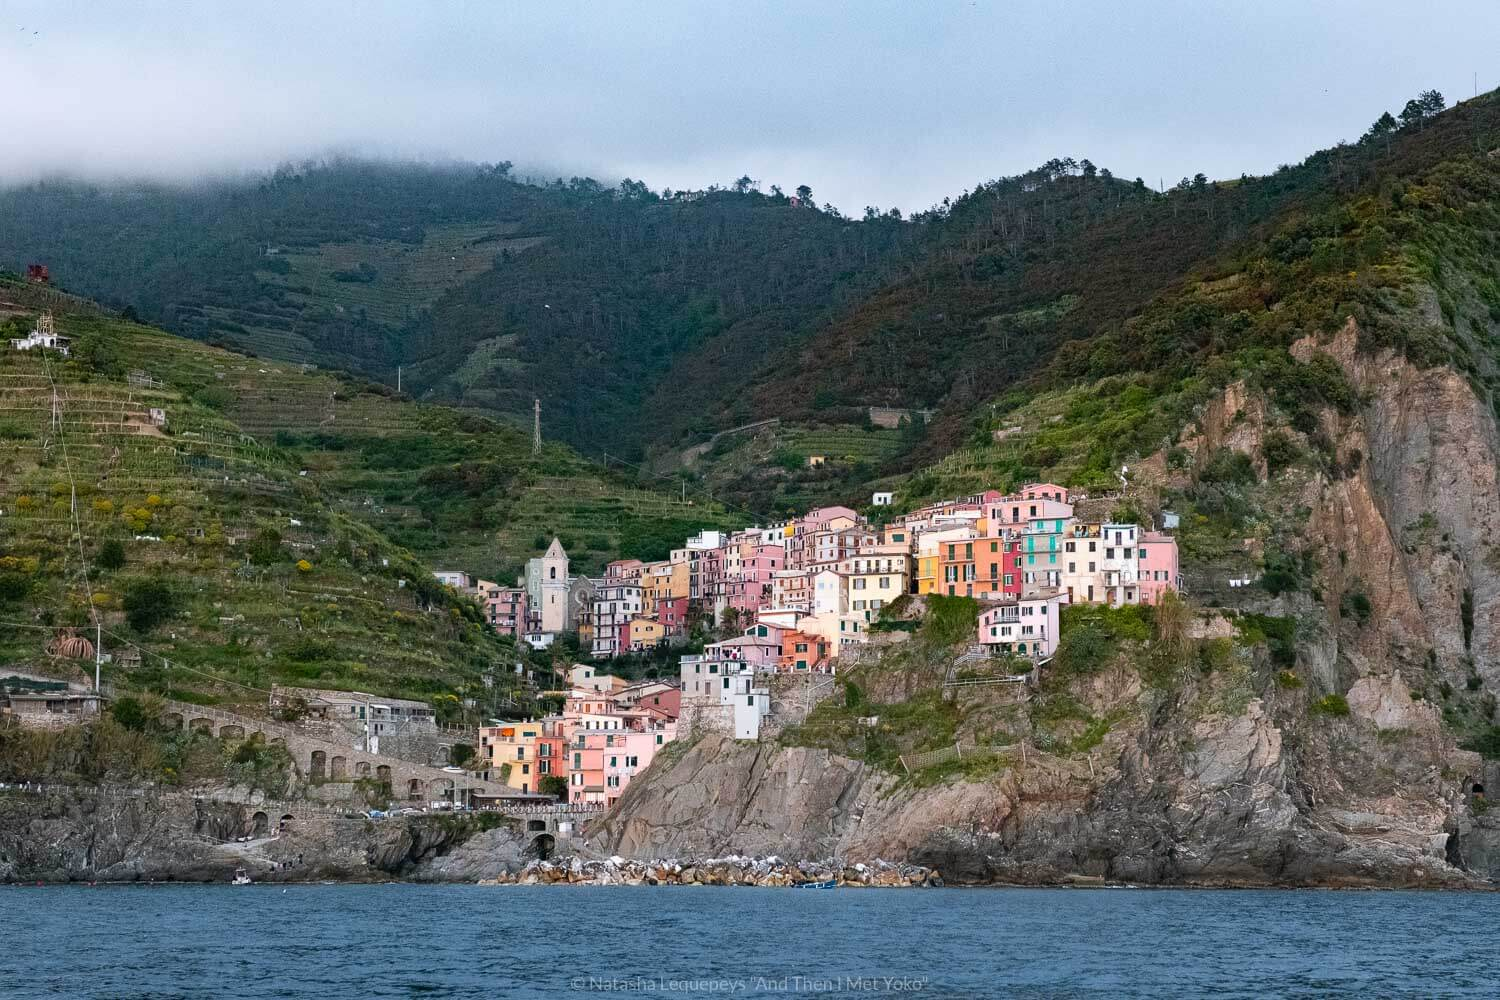 """Manarola from the water, Cinque Terre. Travel photography and guide by © Natasha Lequepeys for """"And Then I Met Yoko"""". #cinqueterre #italy #travelphotography"""